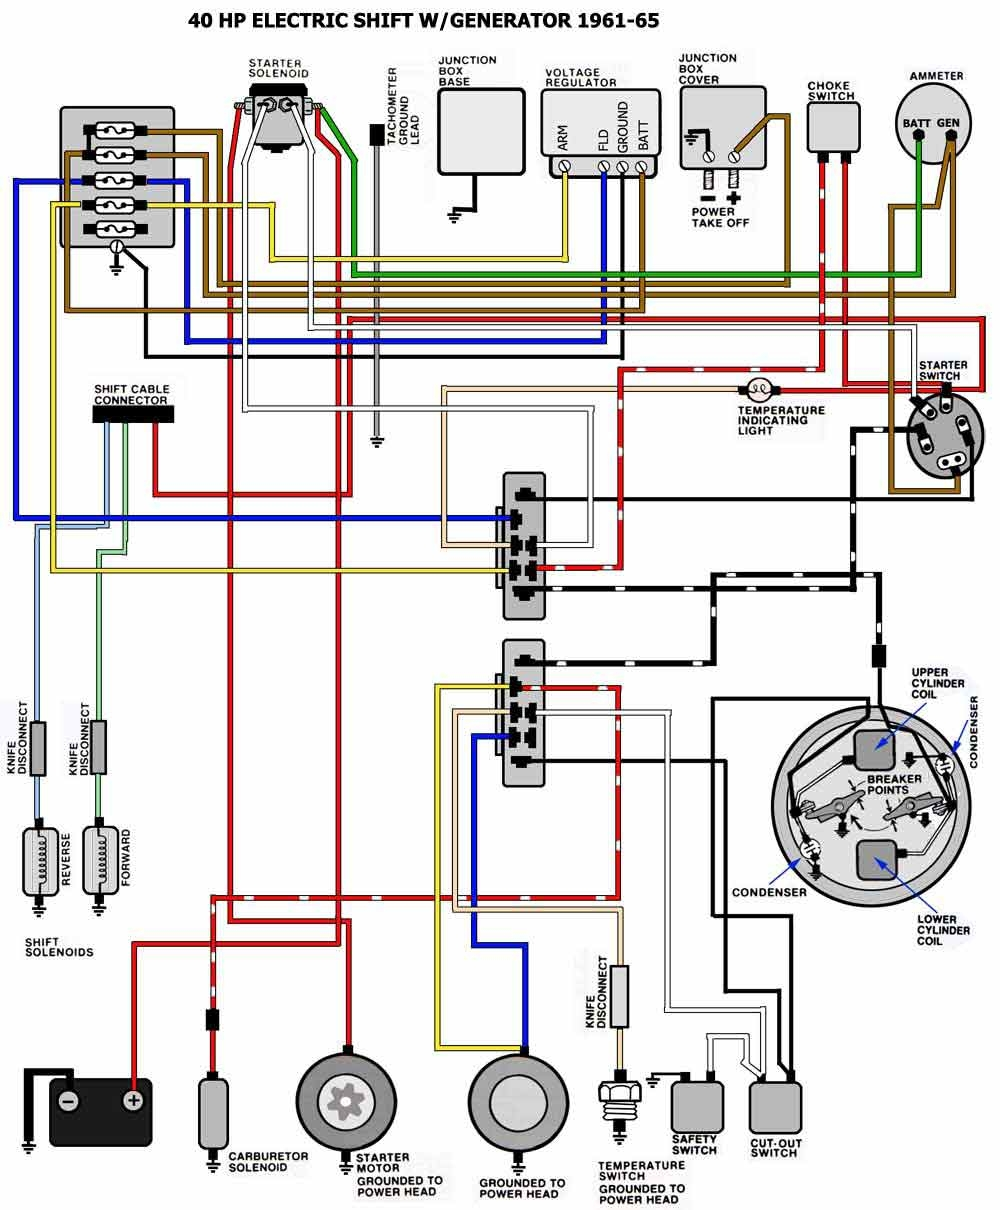 Yamaha Ignition Switch Wiring Diagram from static-cdn.imageservice.cloud